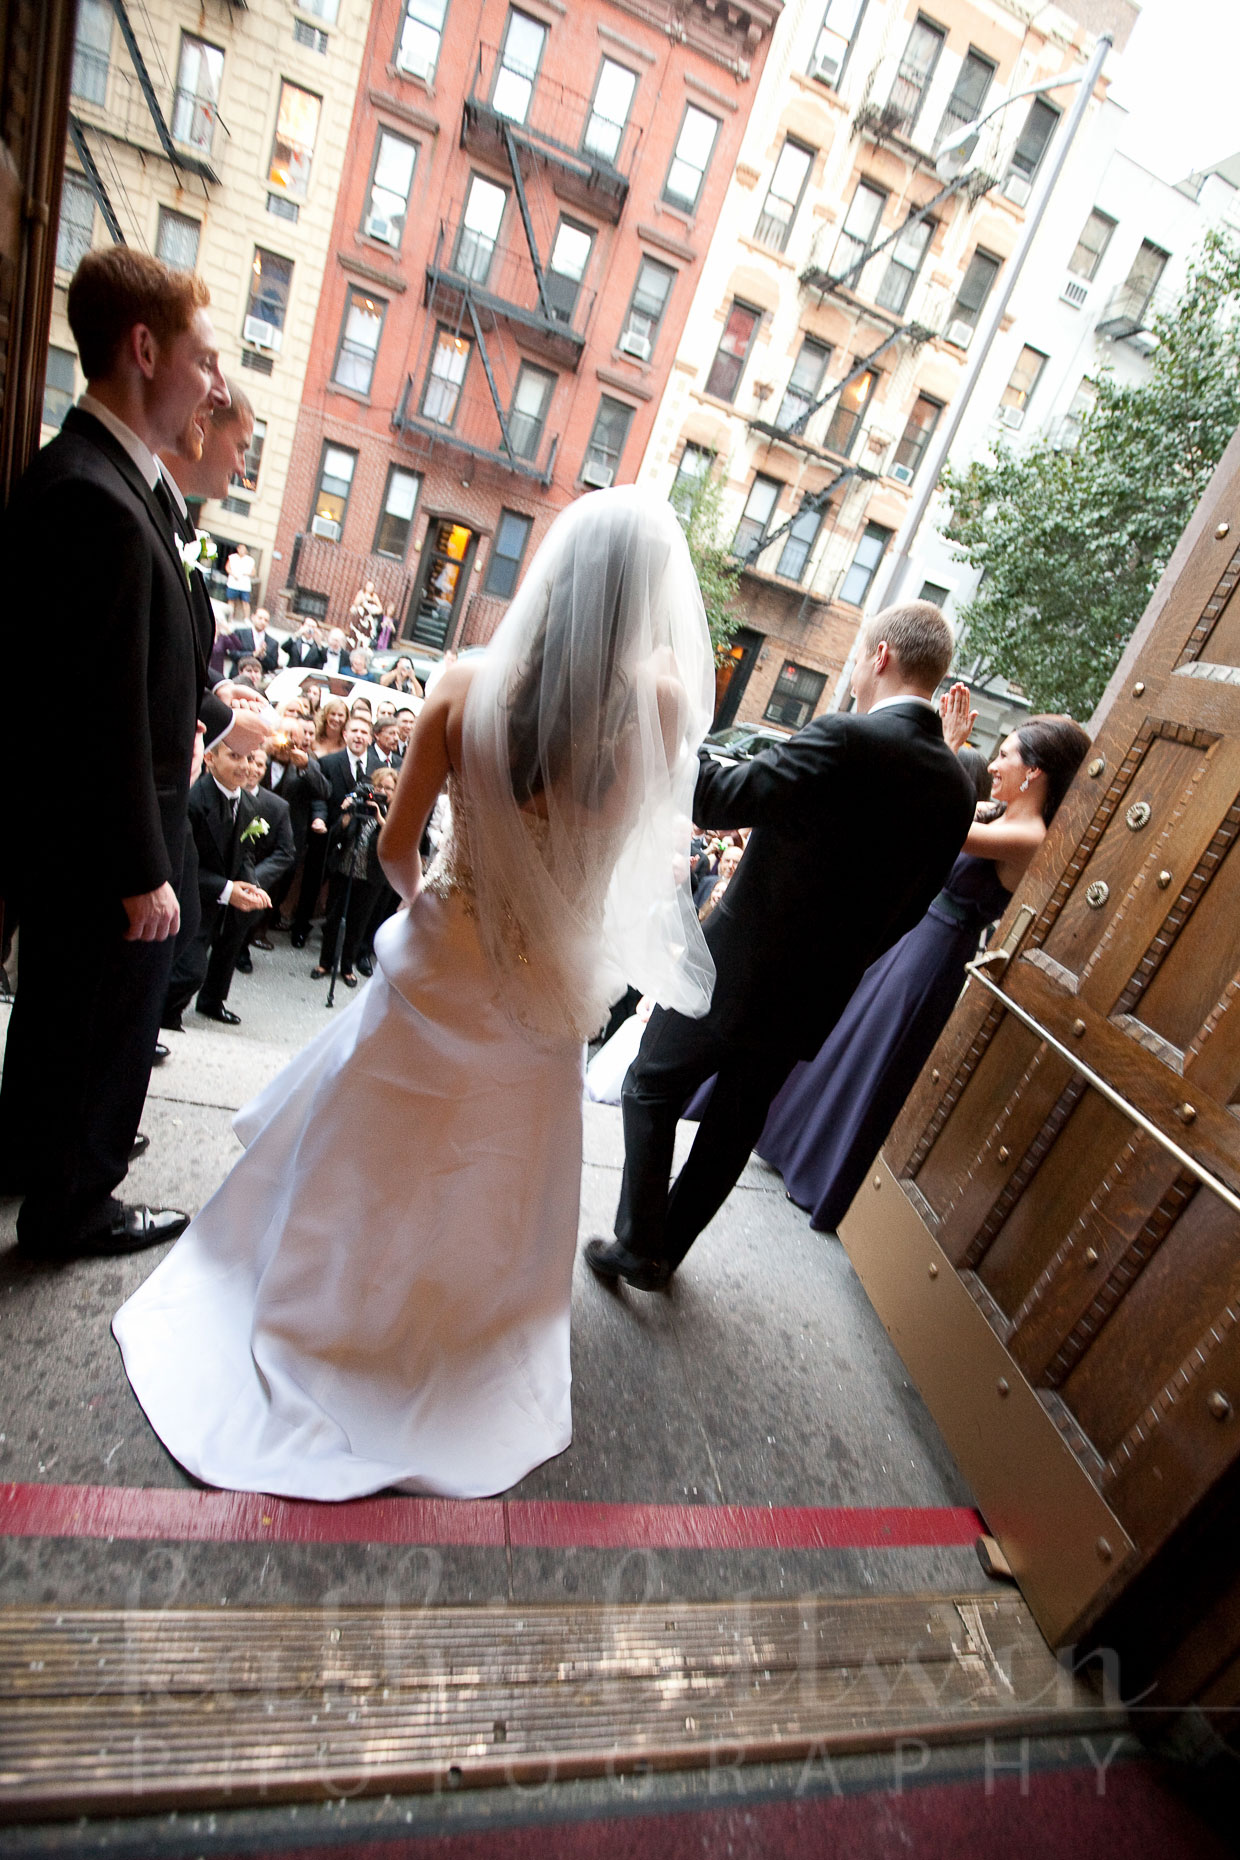 Kathi_Littwin_Photography_Plaza_NYC_Wedding-2061